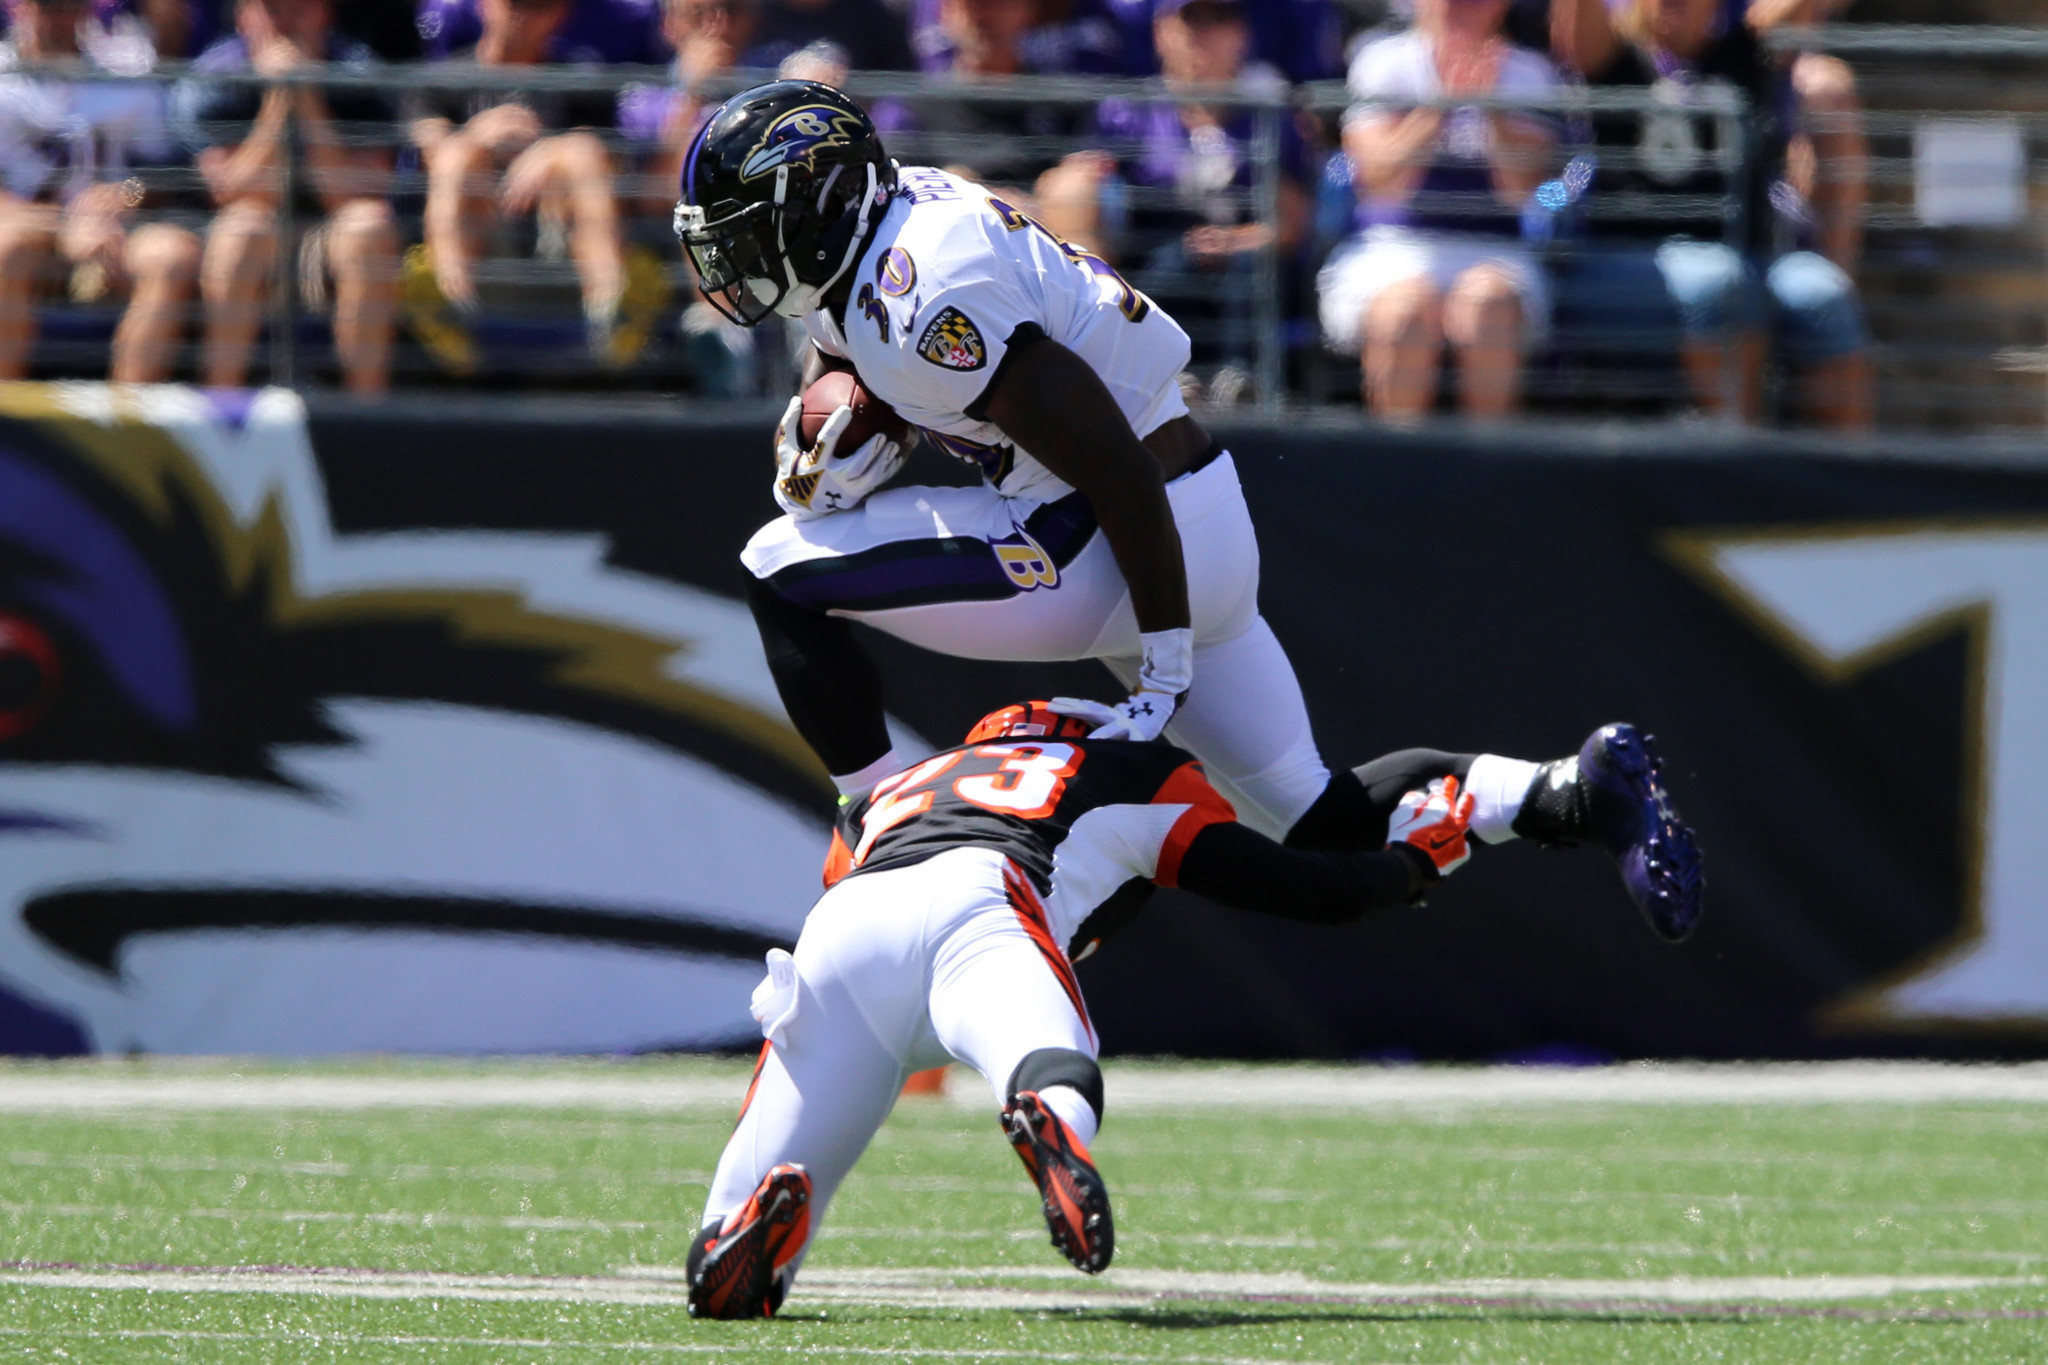 With win over Bengals, Ravens could take control of AFC North